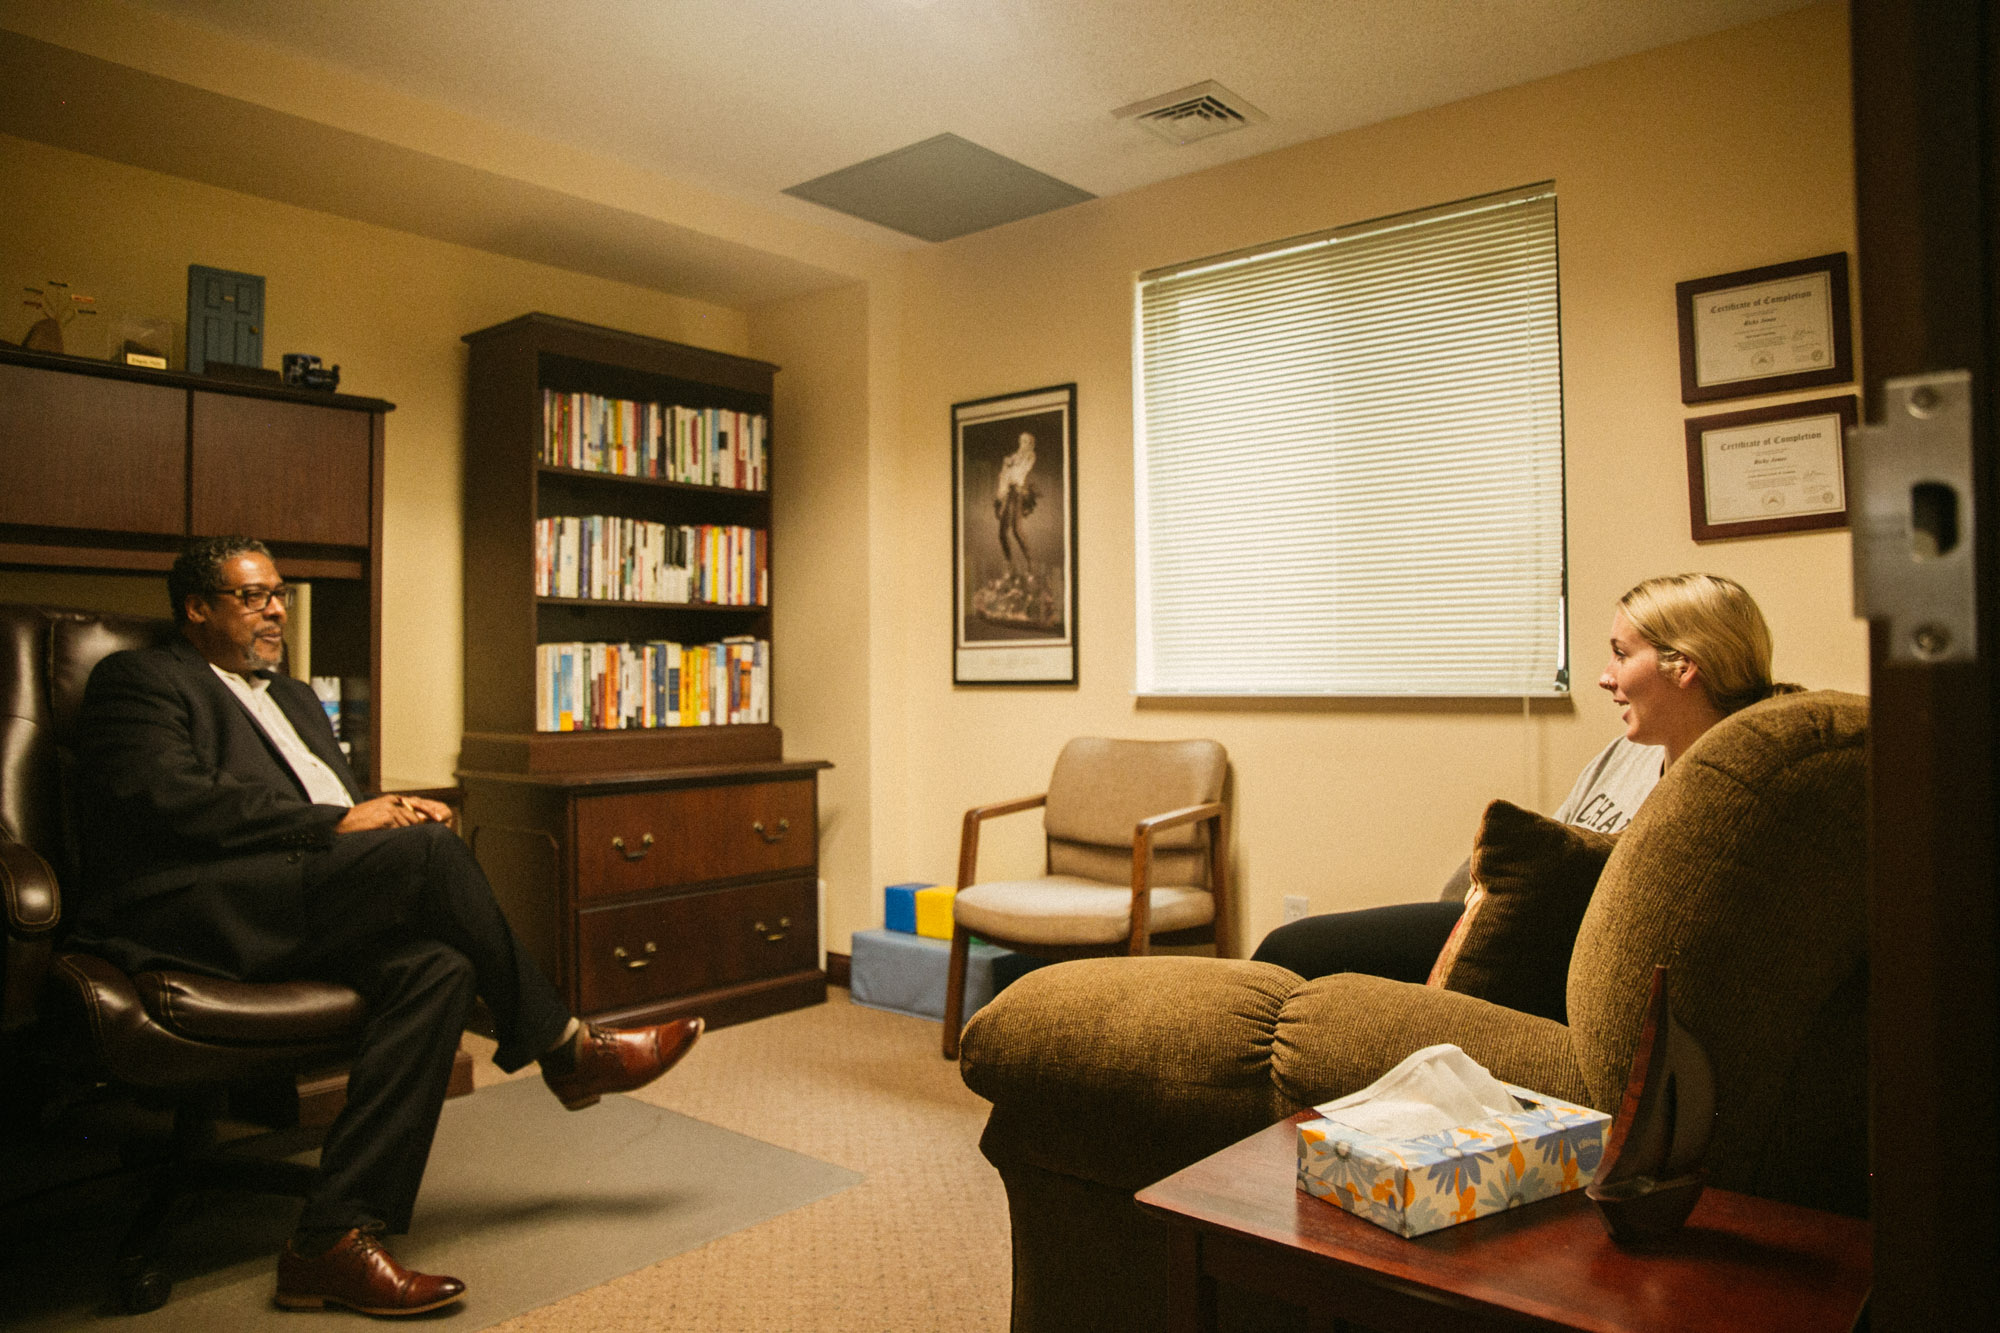 A counselor sits in his office and chats with a client sitting on a couch